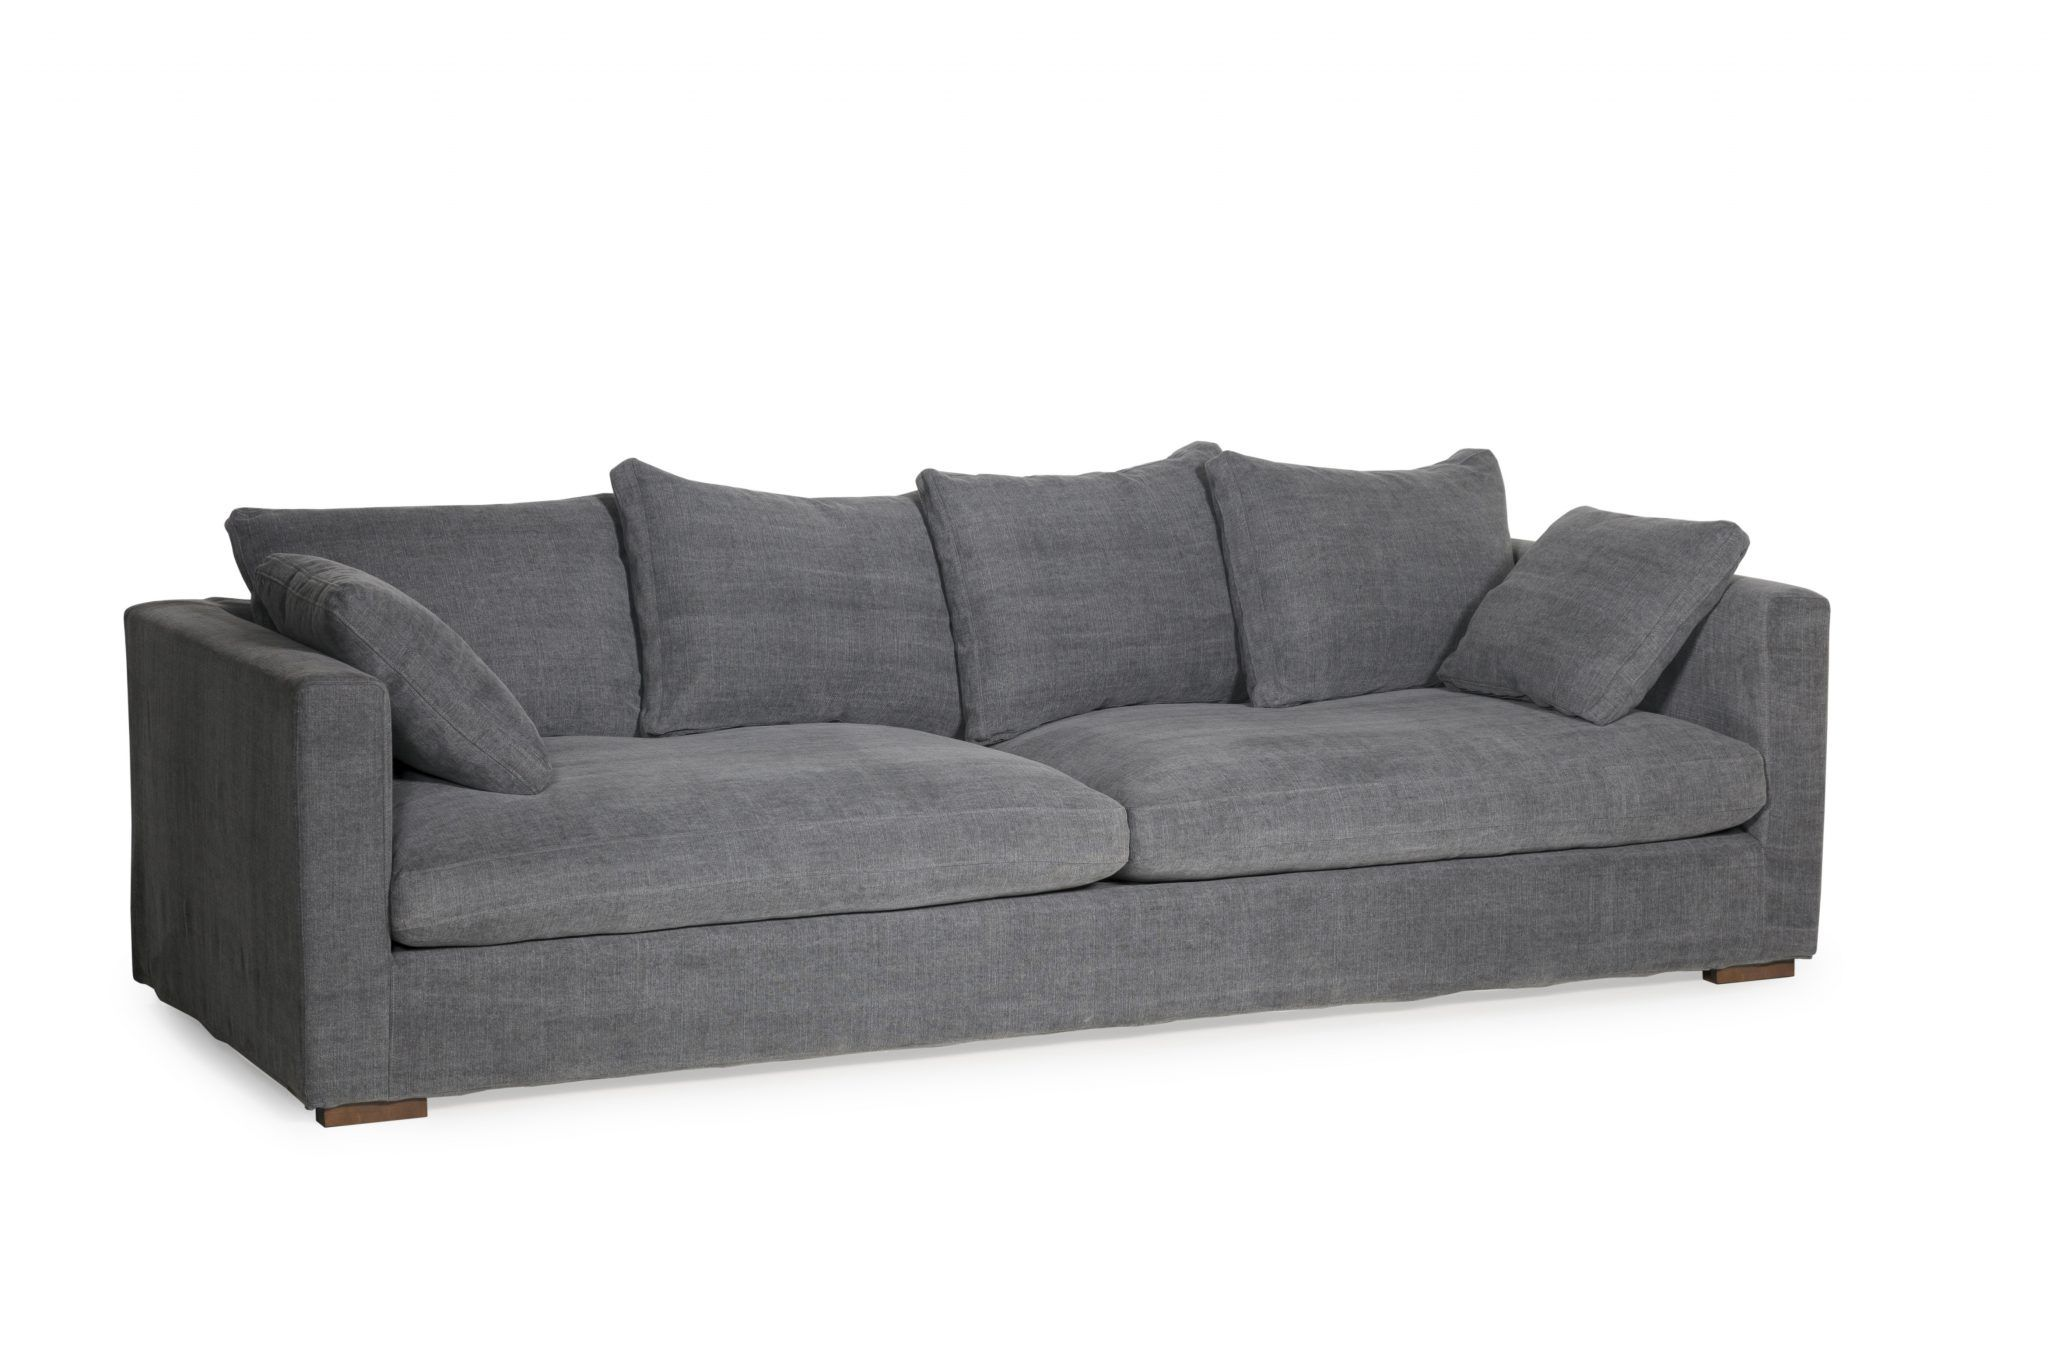 Pin On Chair Sofa Bed Grey